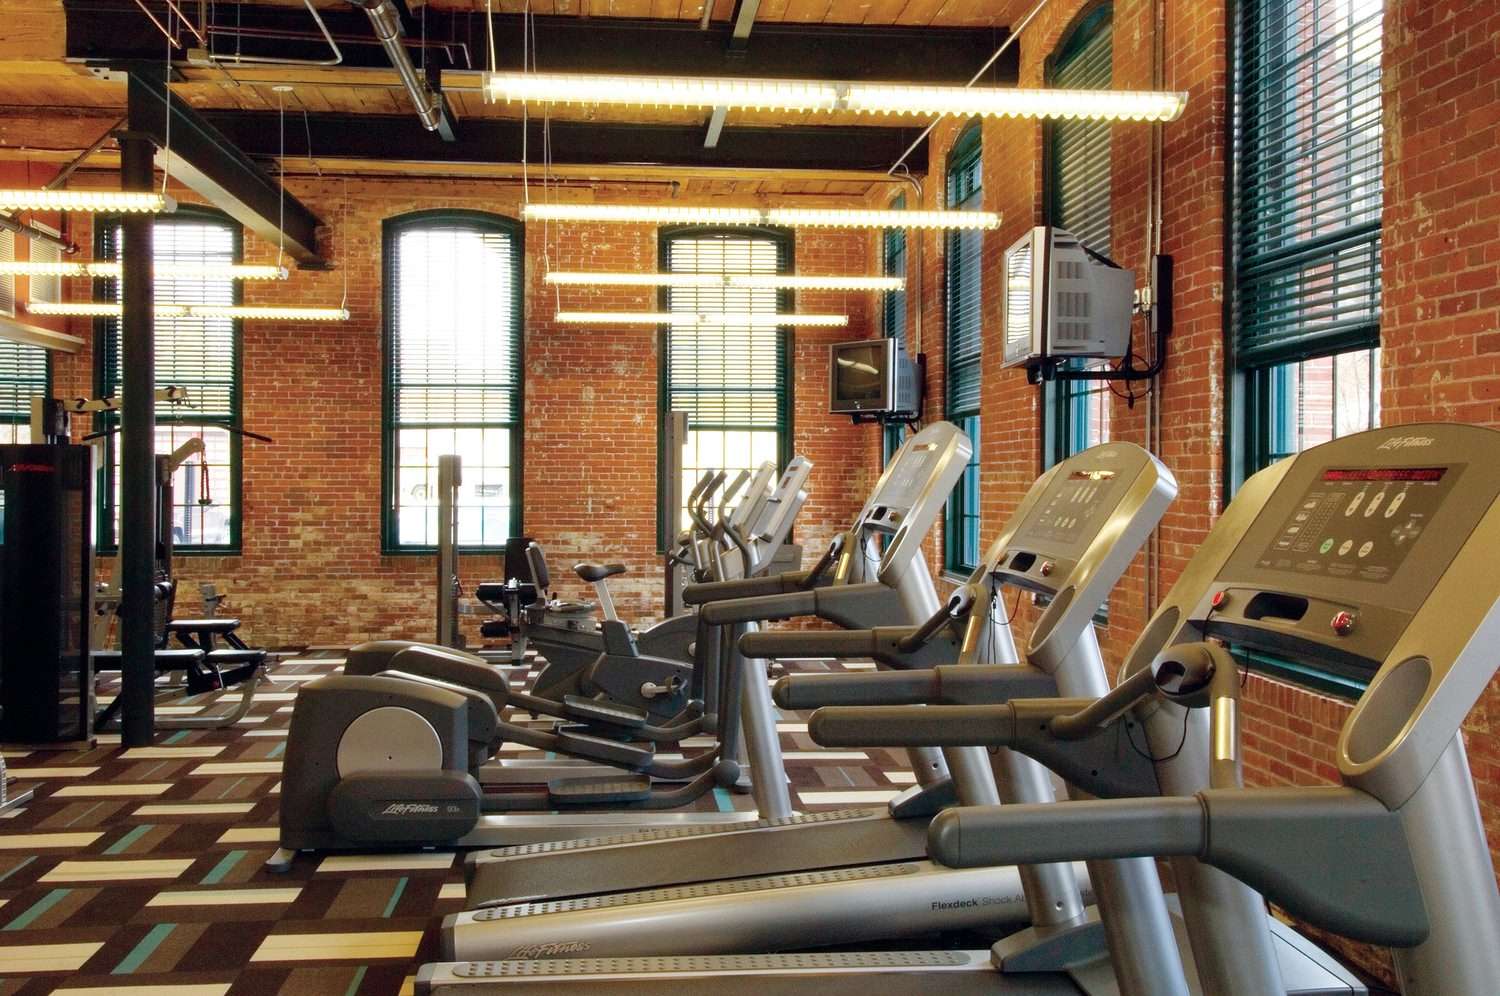 A row of treadmills in a gym with other exercise equipment inside a brick building.